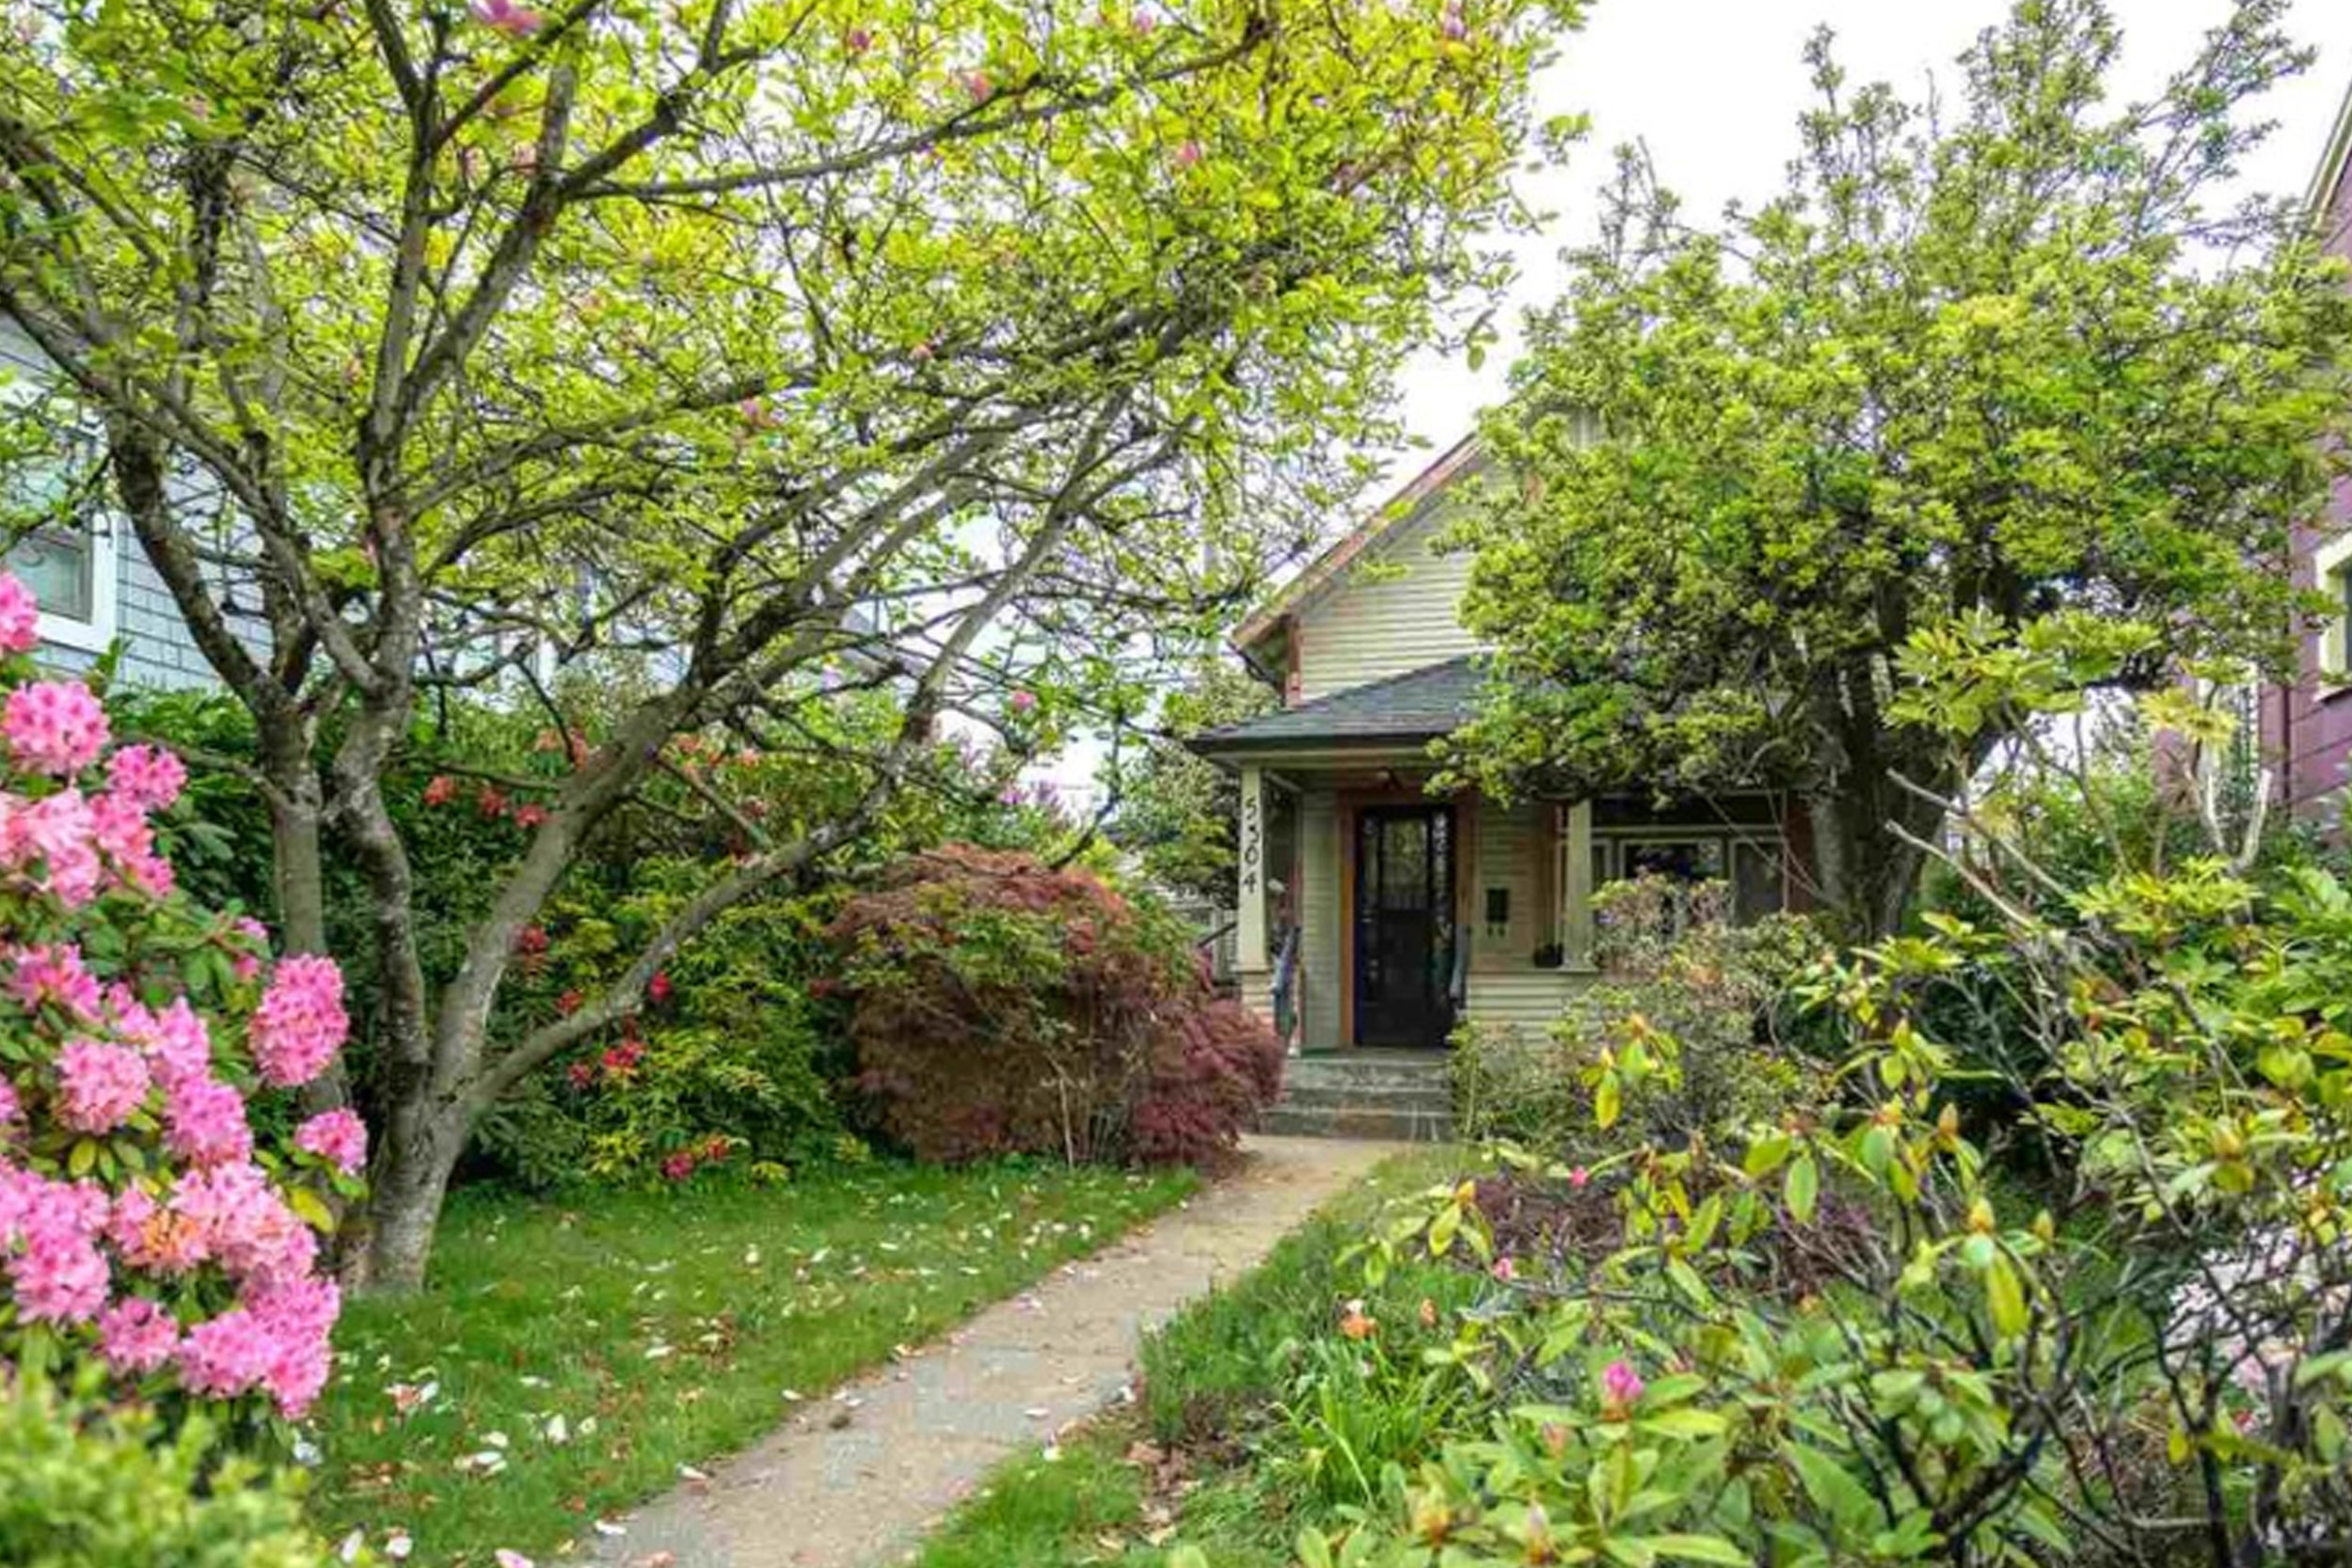 5304 Fraser Street    MLS  R2367197   LISTING PRICE  $949,000   Type  Detached House   Bed  2  Bath  1   SQ FT  906 sqft  $4389.43